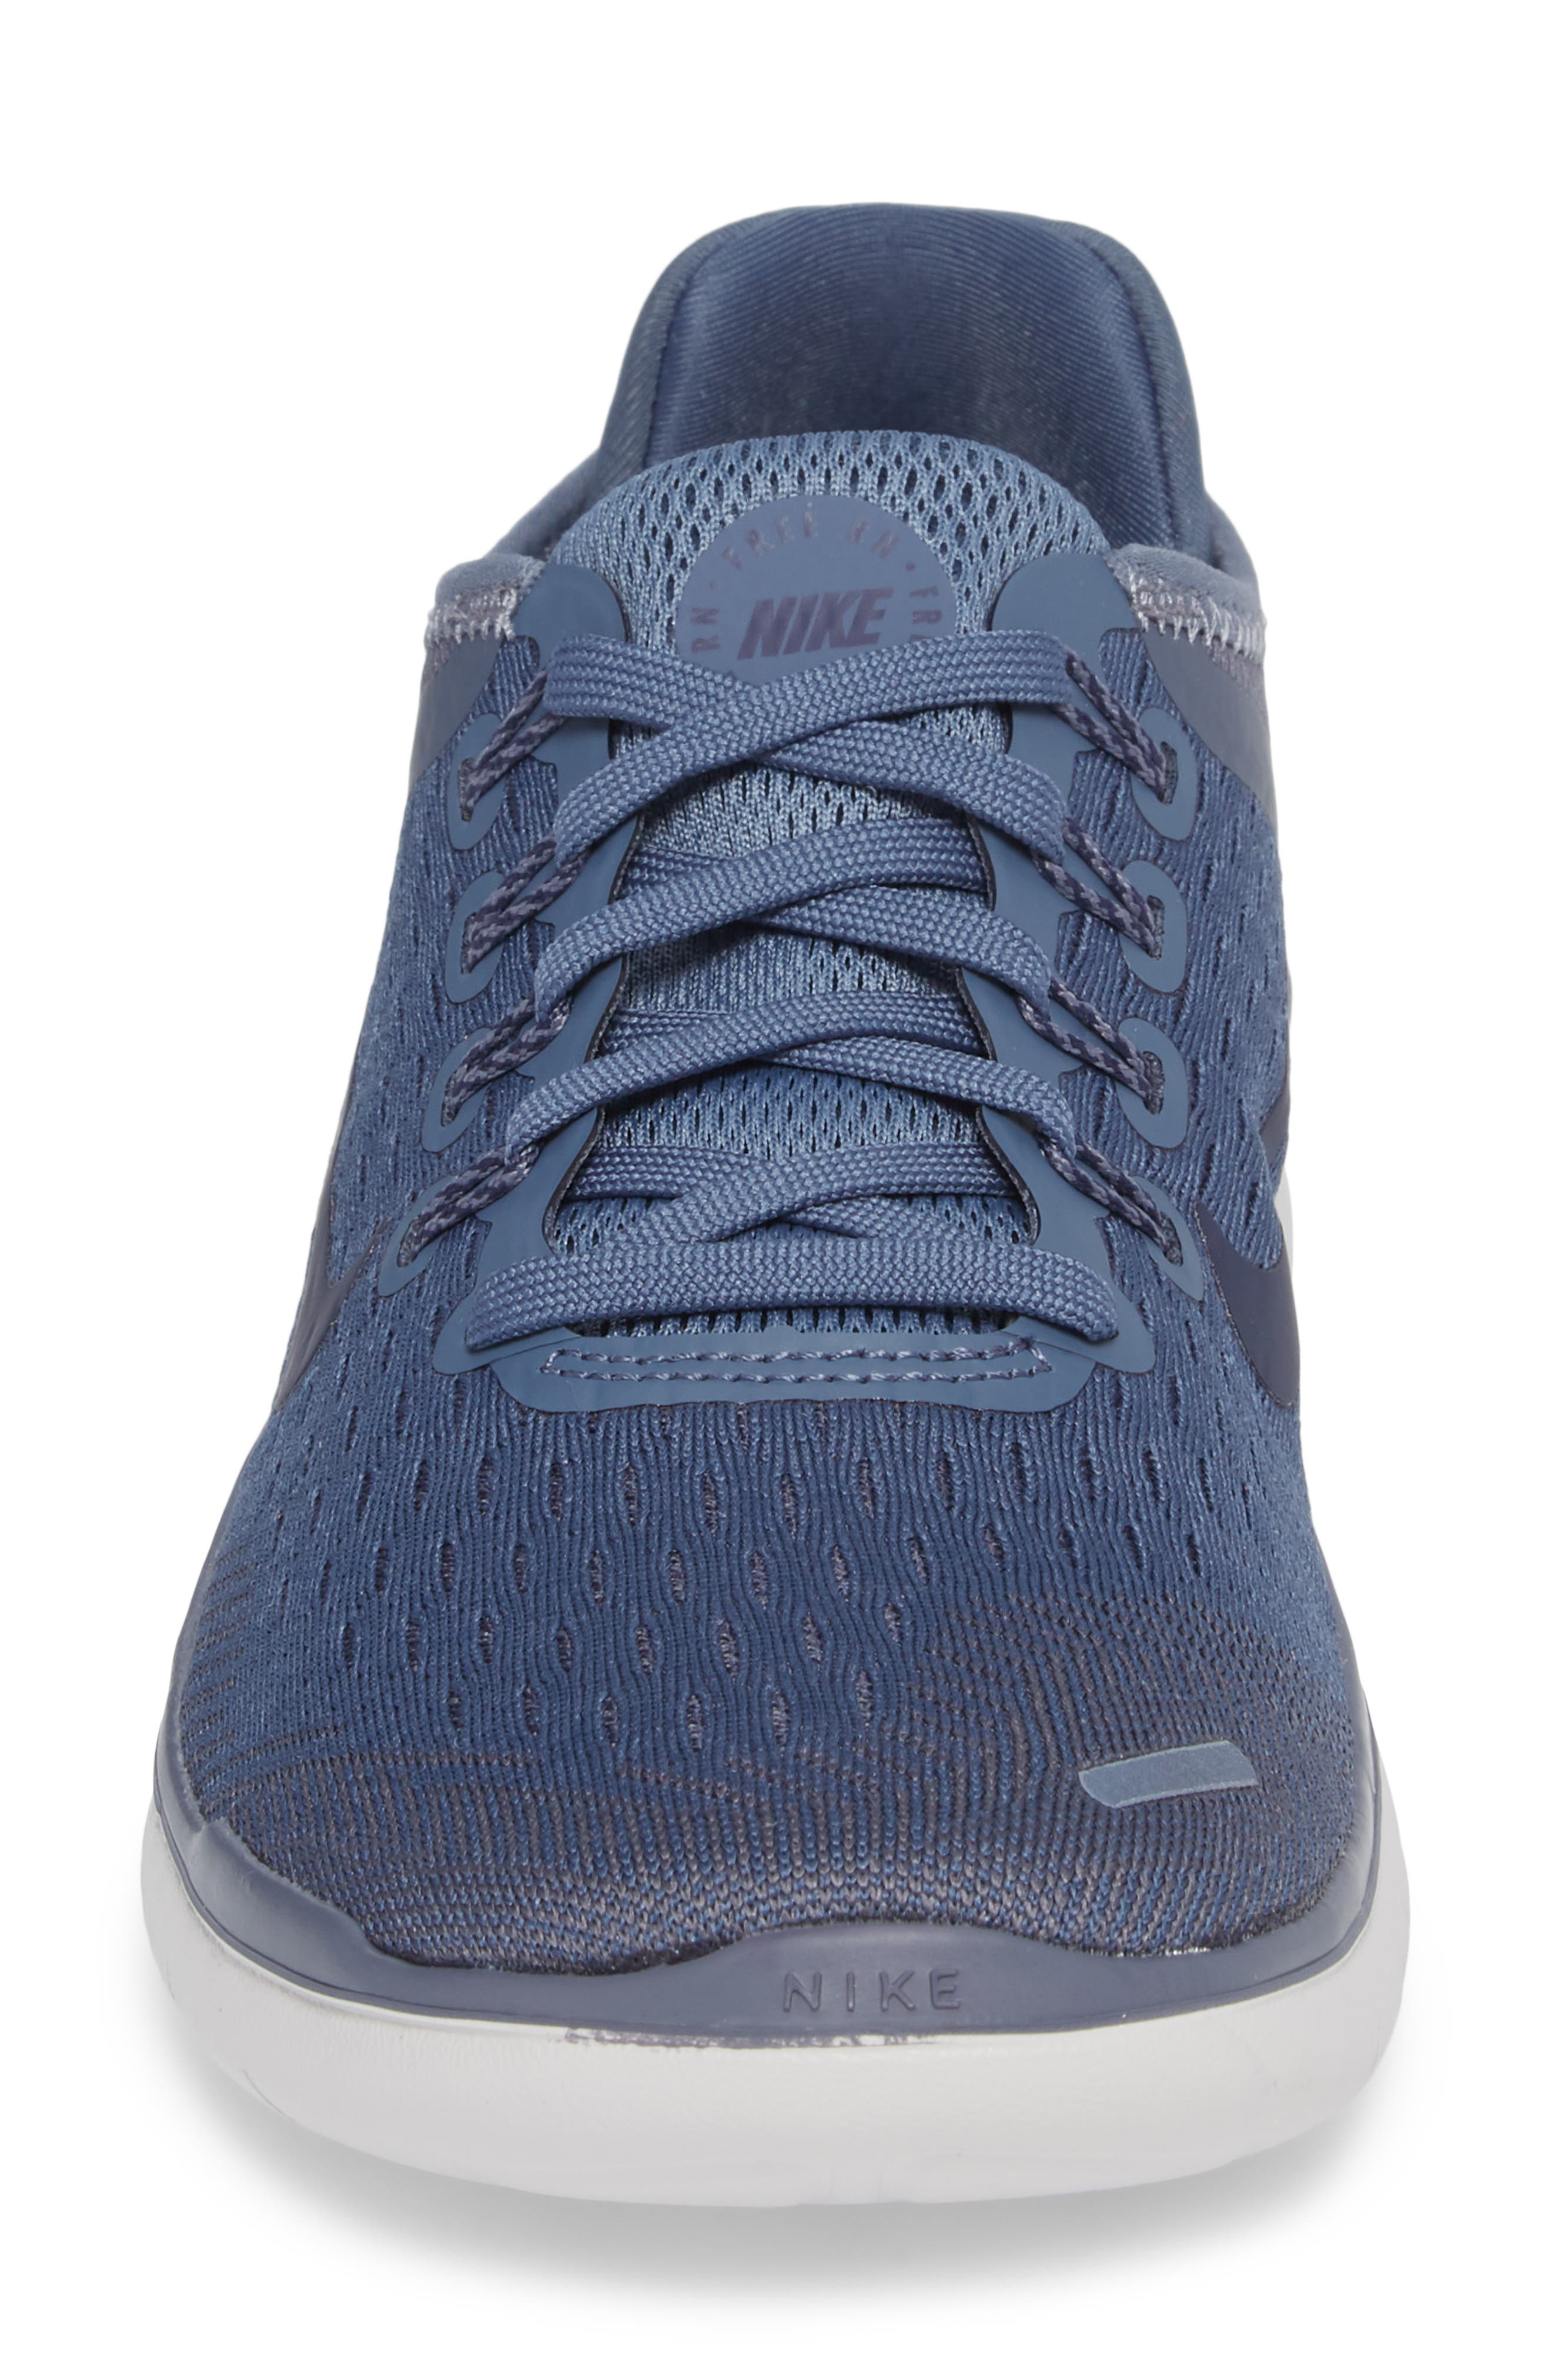 Free RN 2018 Running Shoe,                             Alternate thumbnail 4, color,                             Diffused Blue/ Neutral Indigo